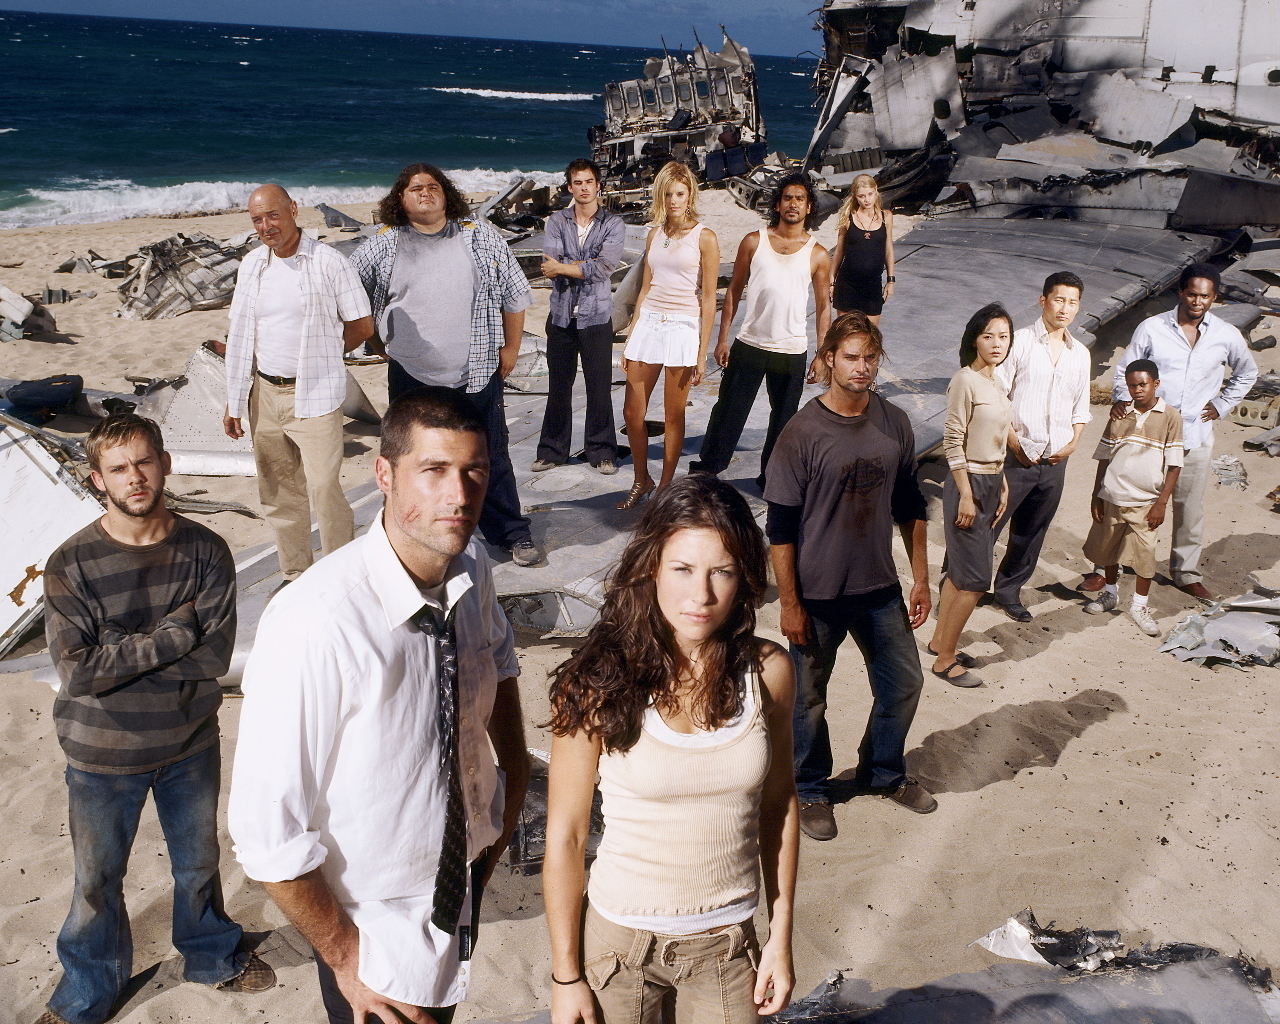 Lost-cast-lost-vs-heroes-7051997-1280-10